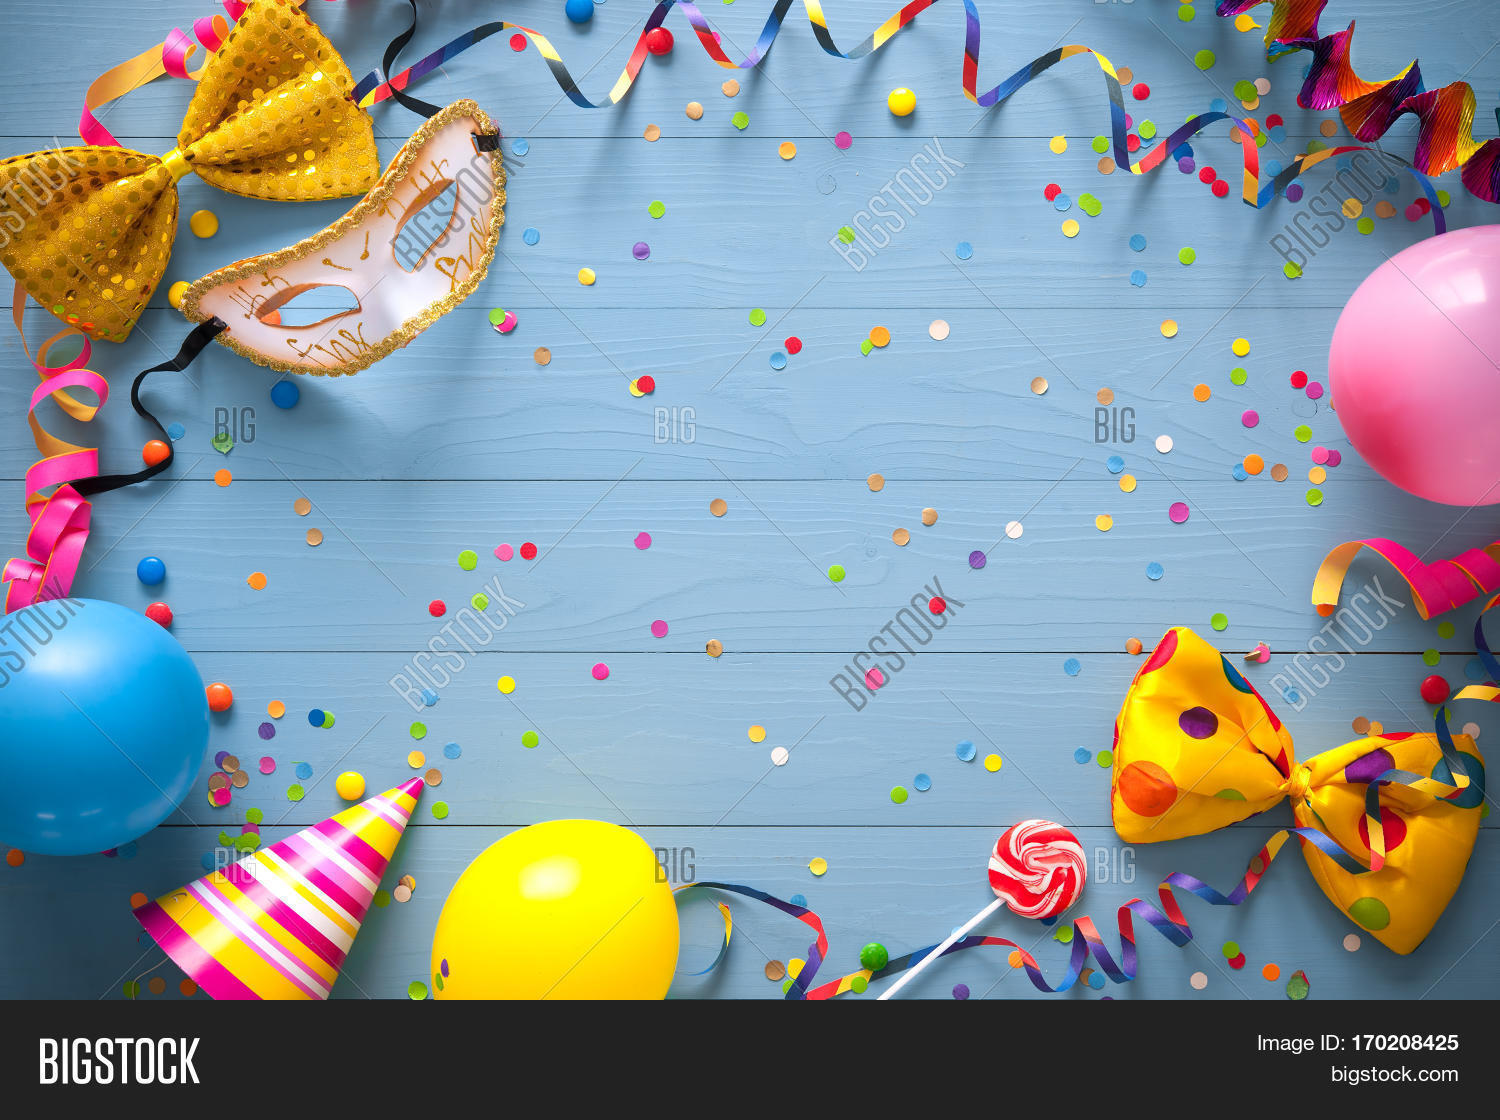 birthday picture frame images ; 170208425